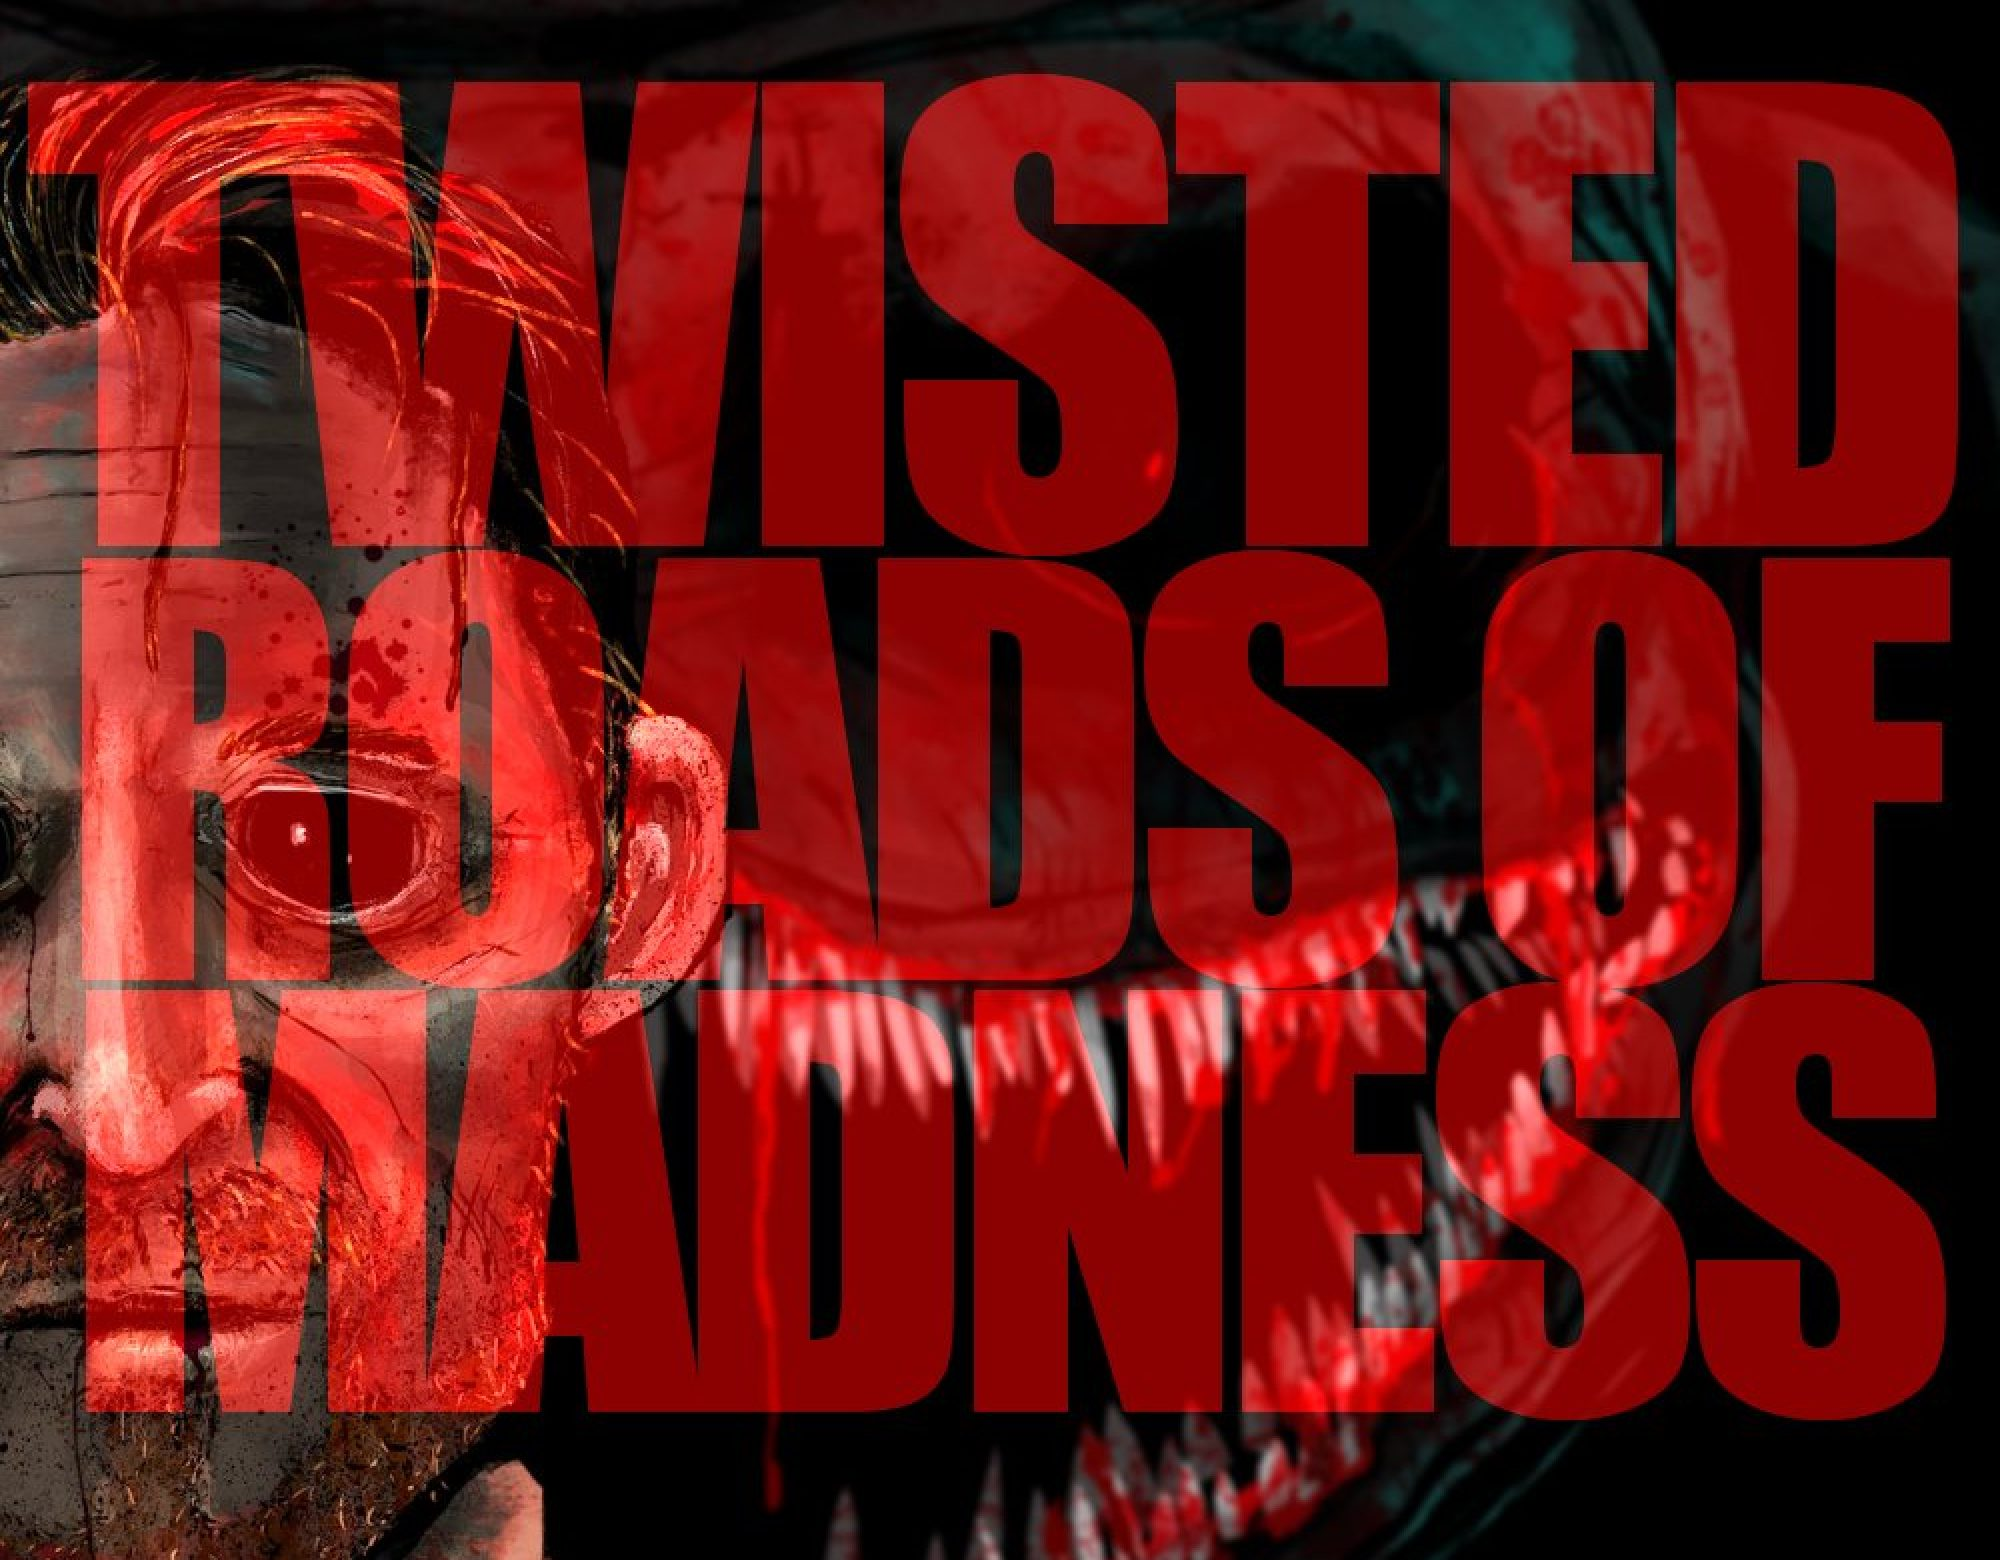 My Twisted Road To Madness